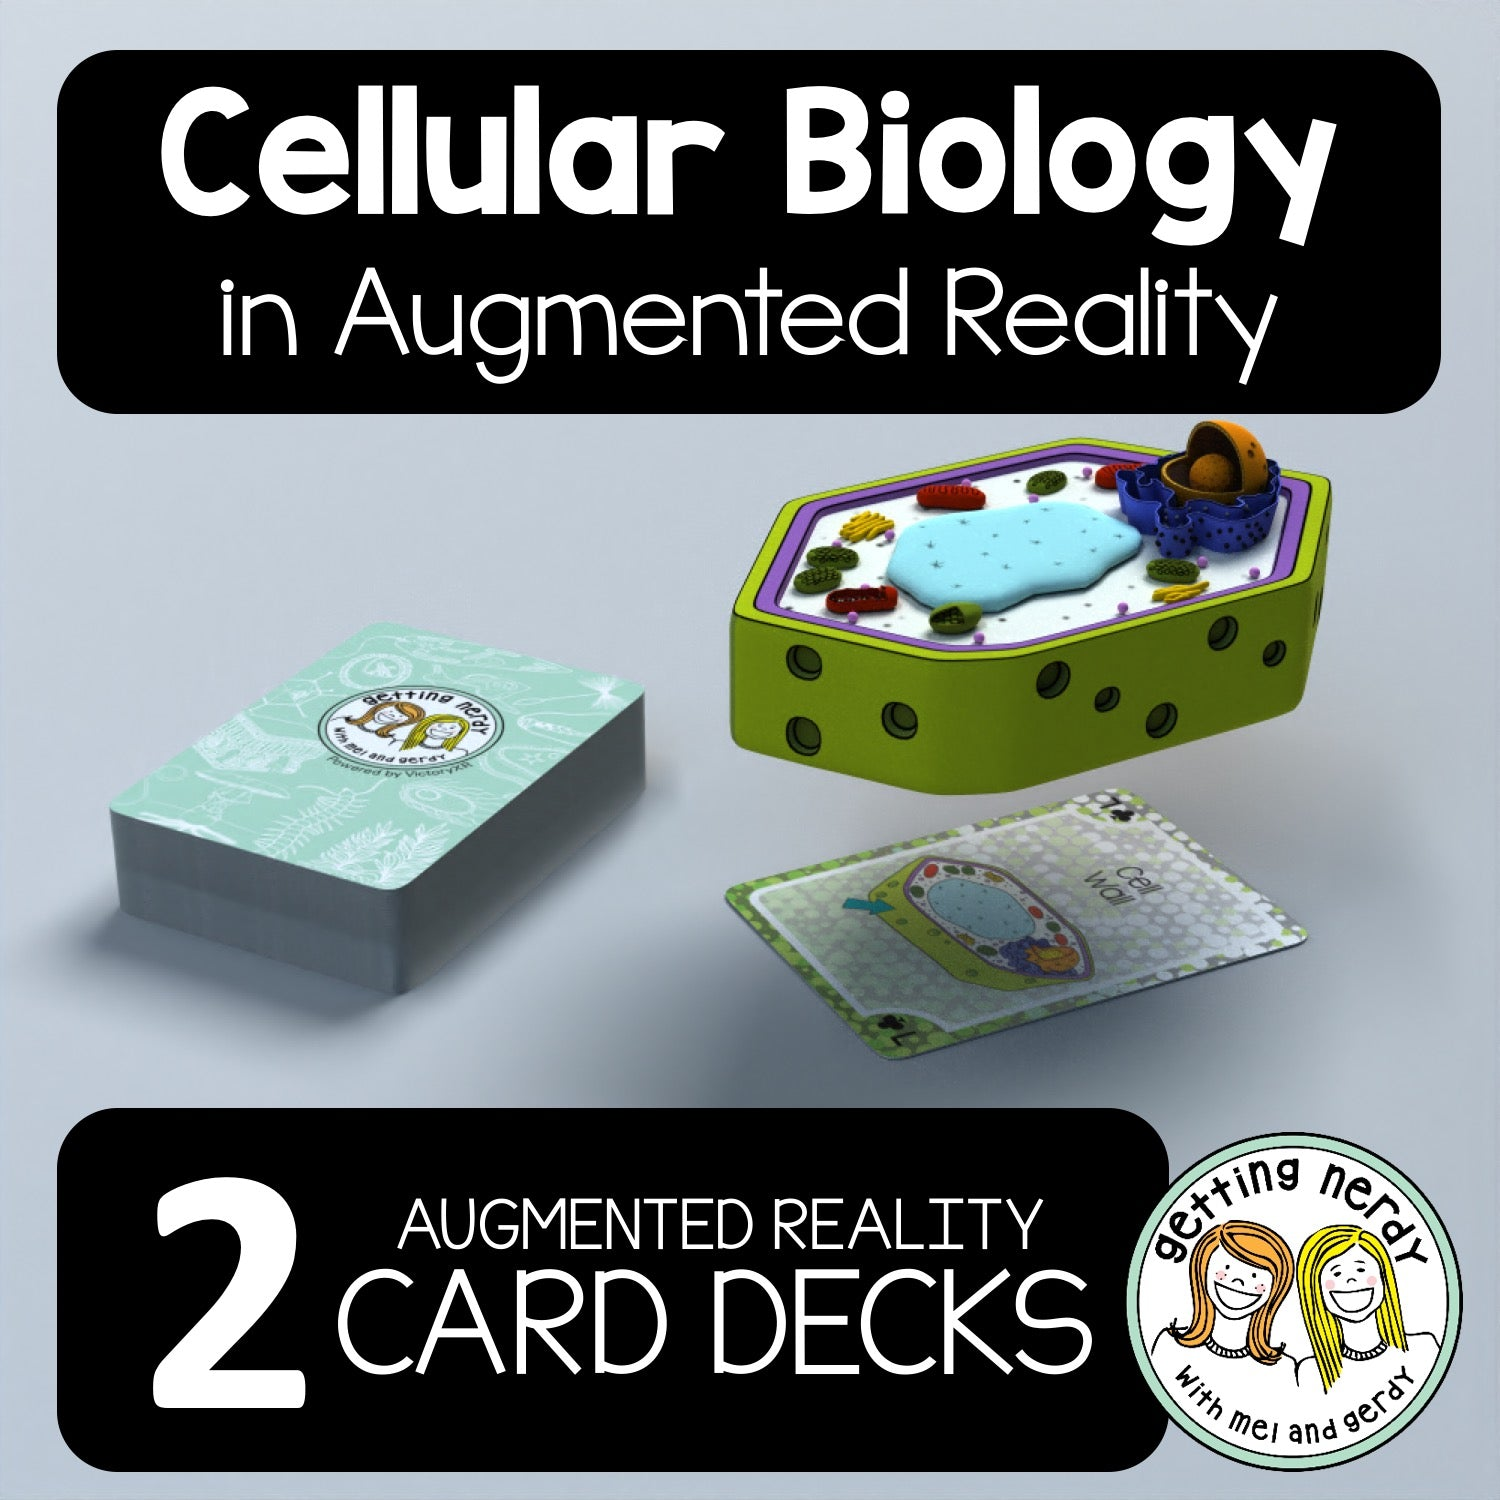 'Getting Nerdy' Cellular Biology Augmented Reality Card Deck - Two Pack